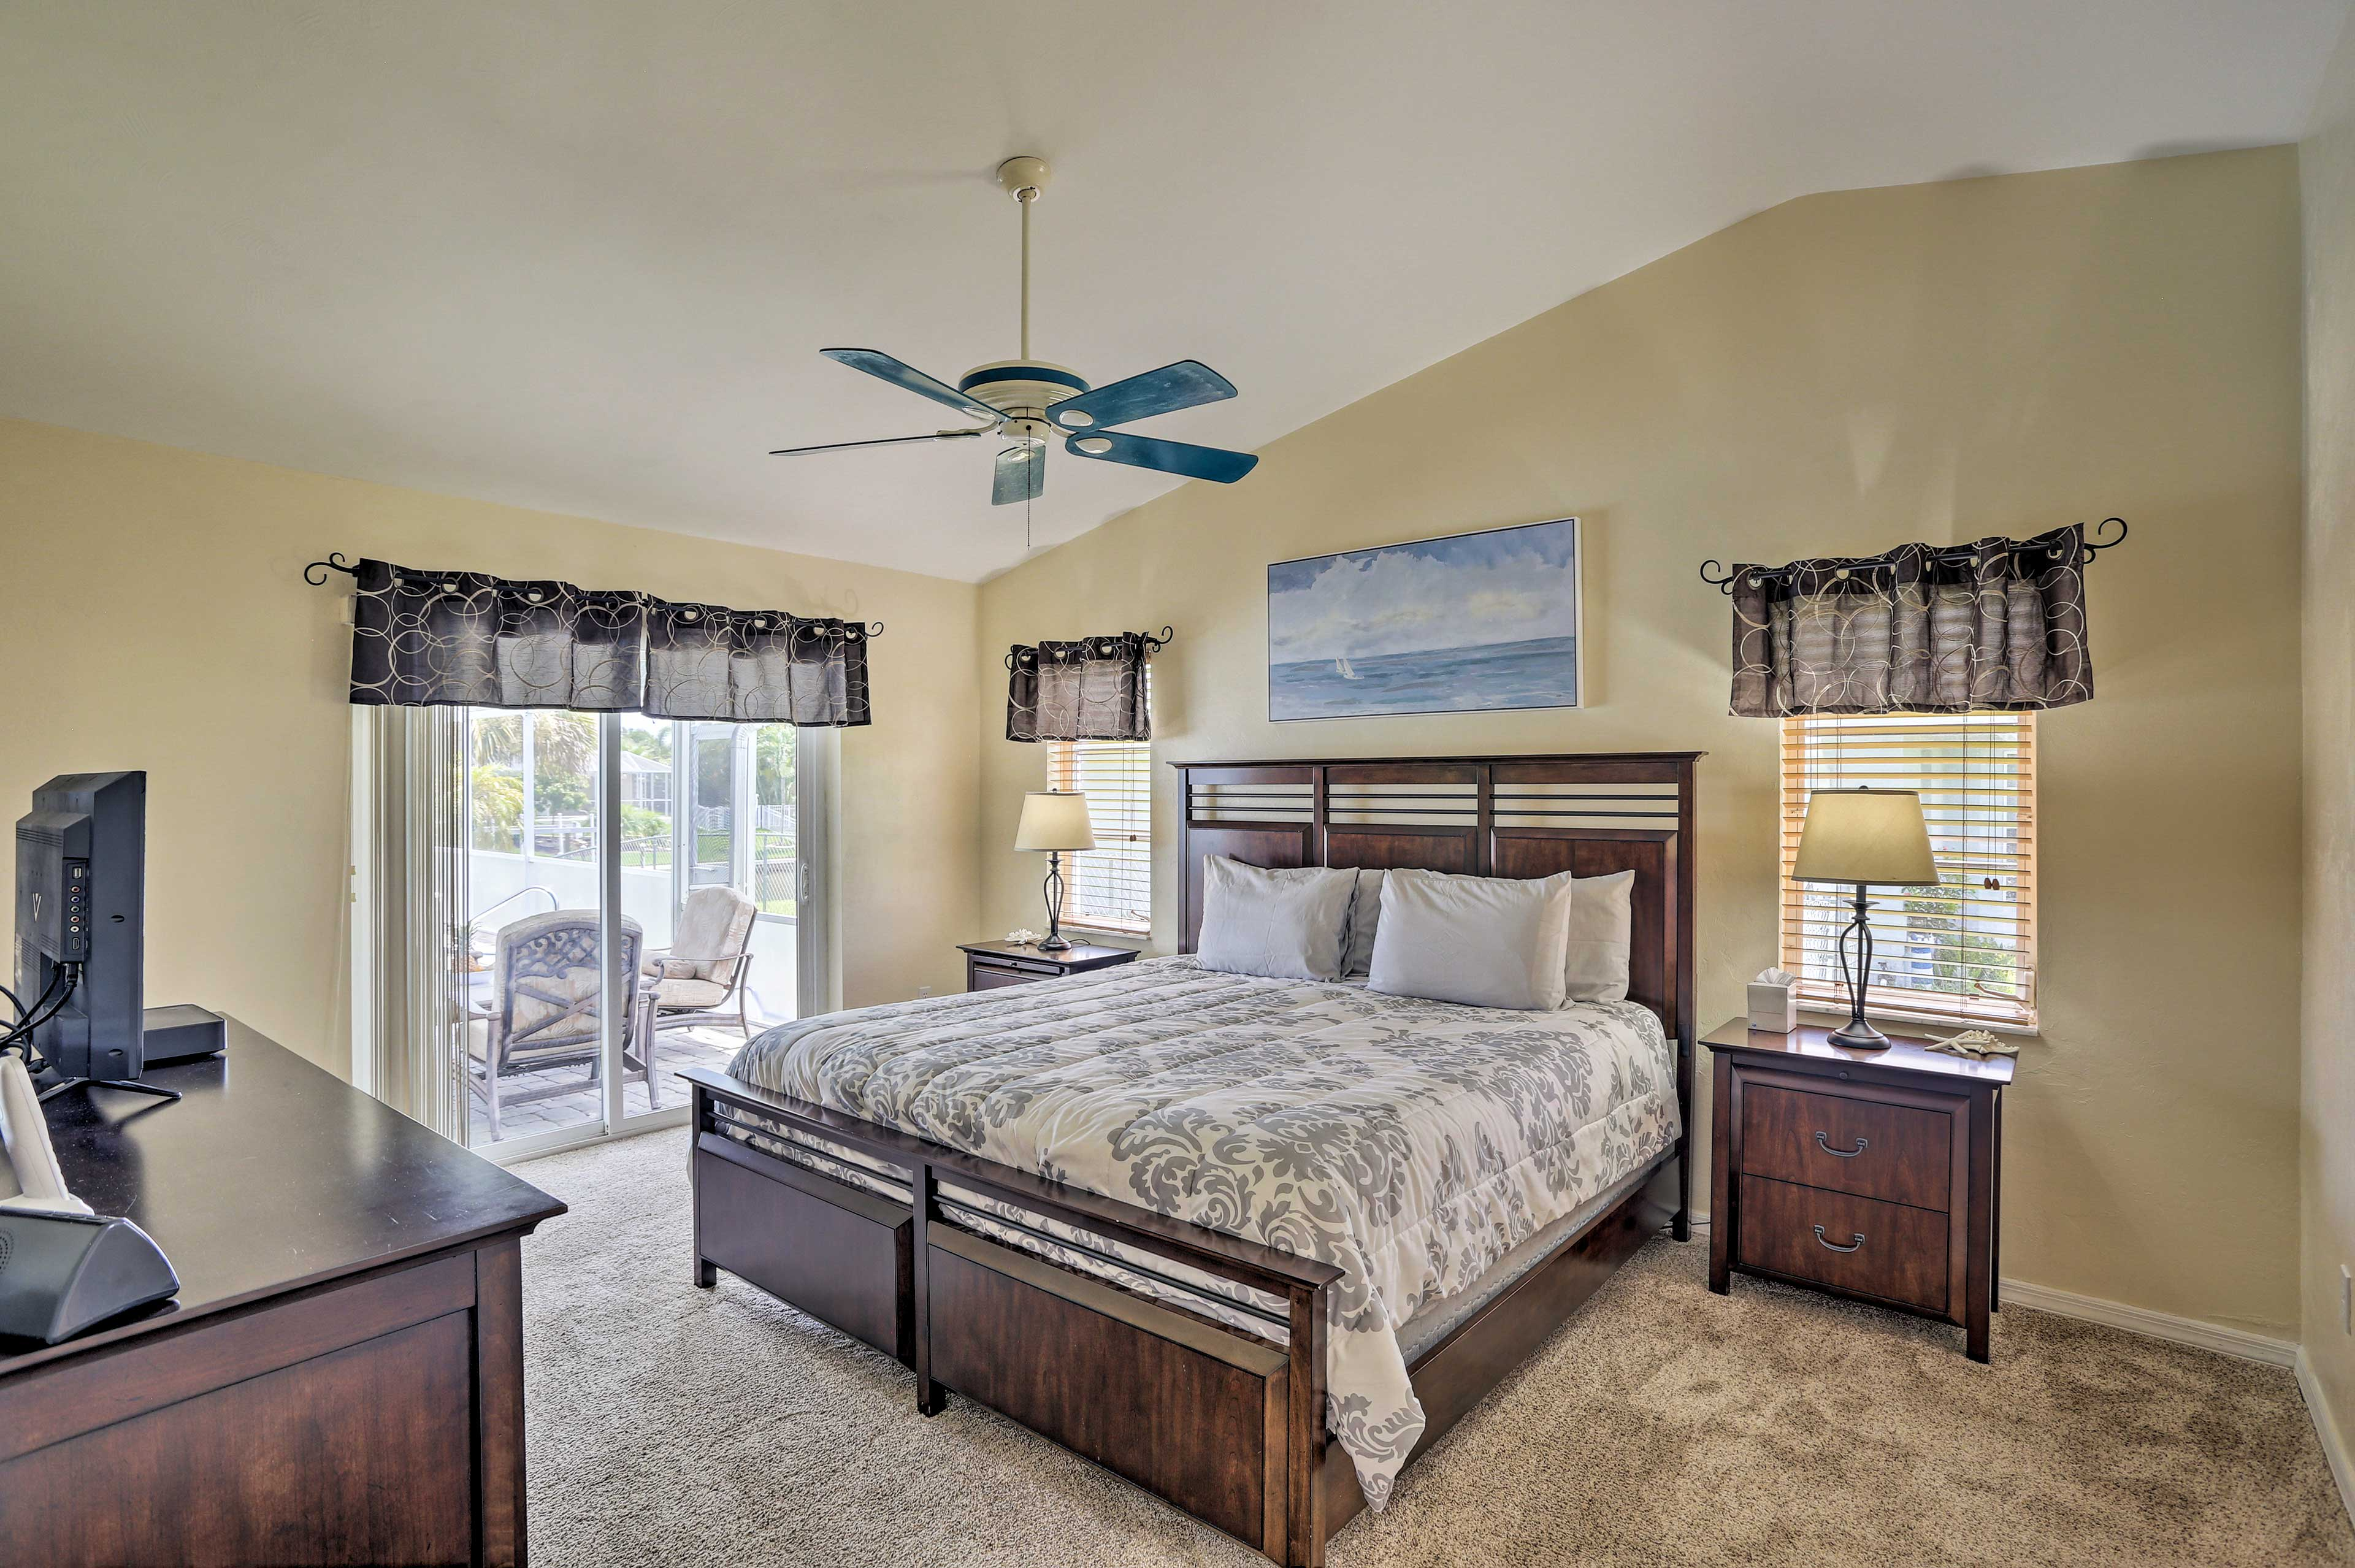 The master bedroom offers direct access to the lanai, spa, and pool.